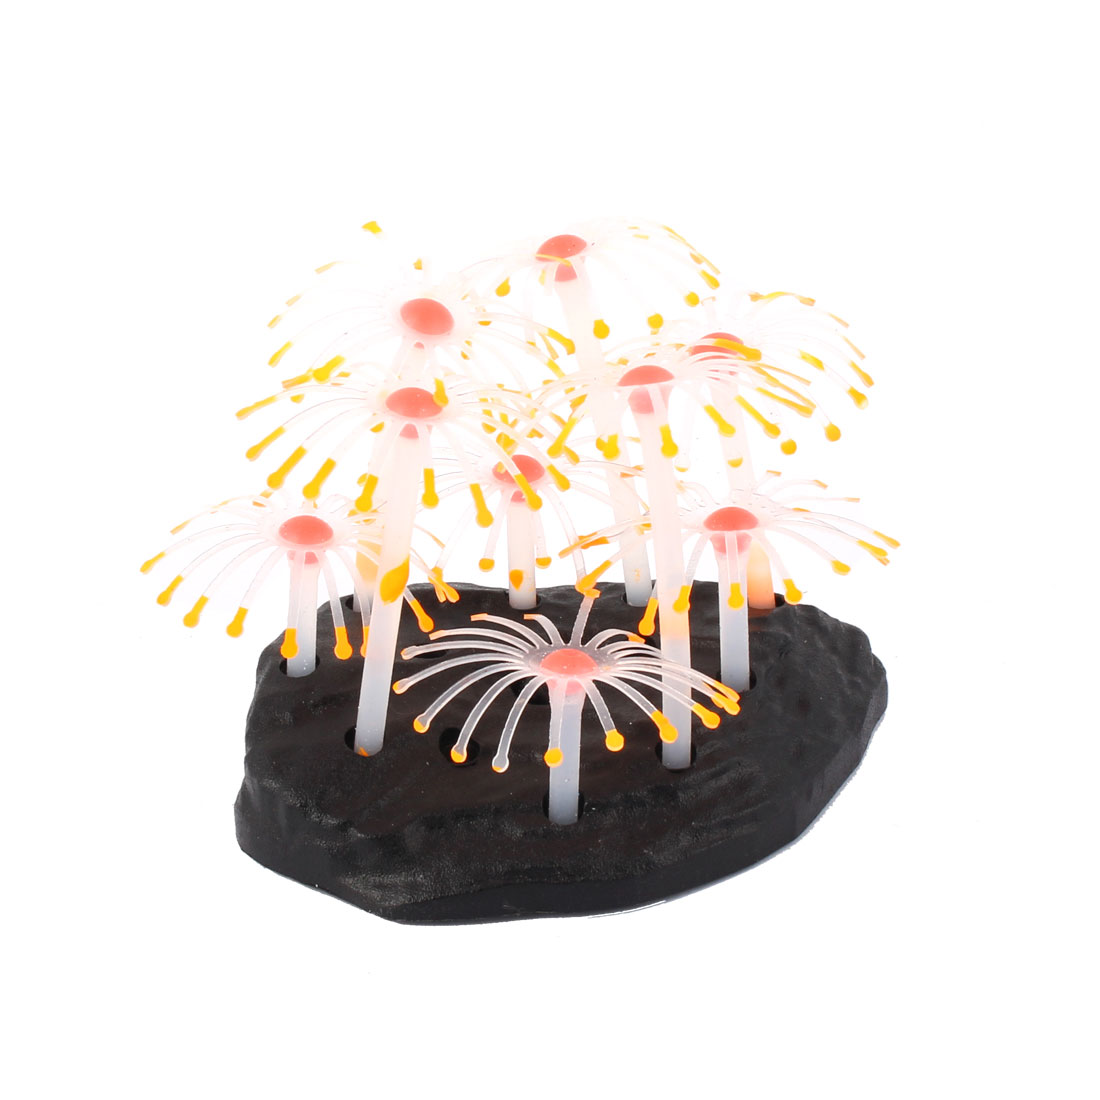 Aquarium Plastic Base Silicone Artificial Coral Plant Ornament Colorful